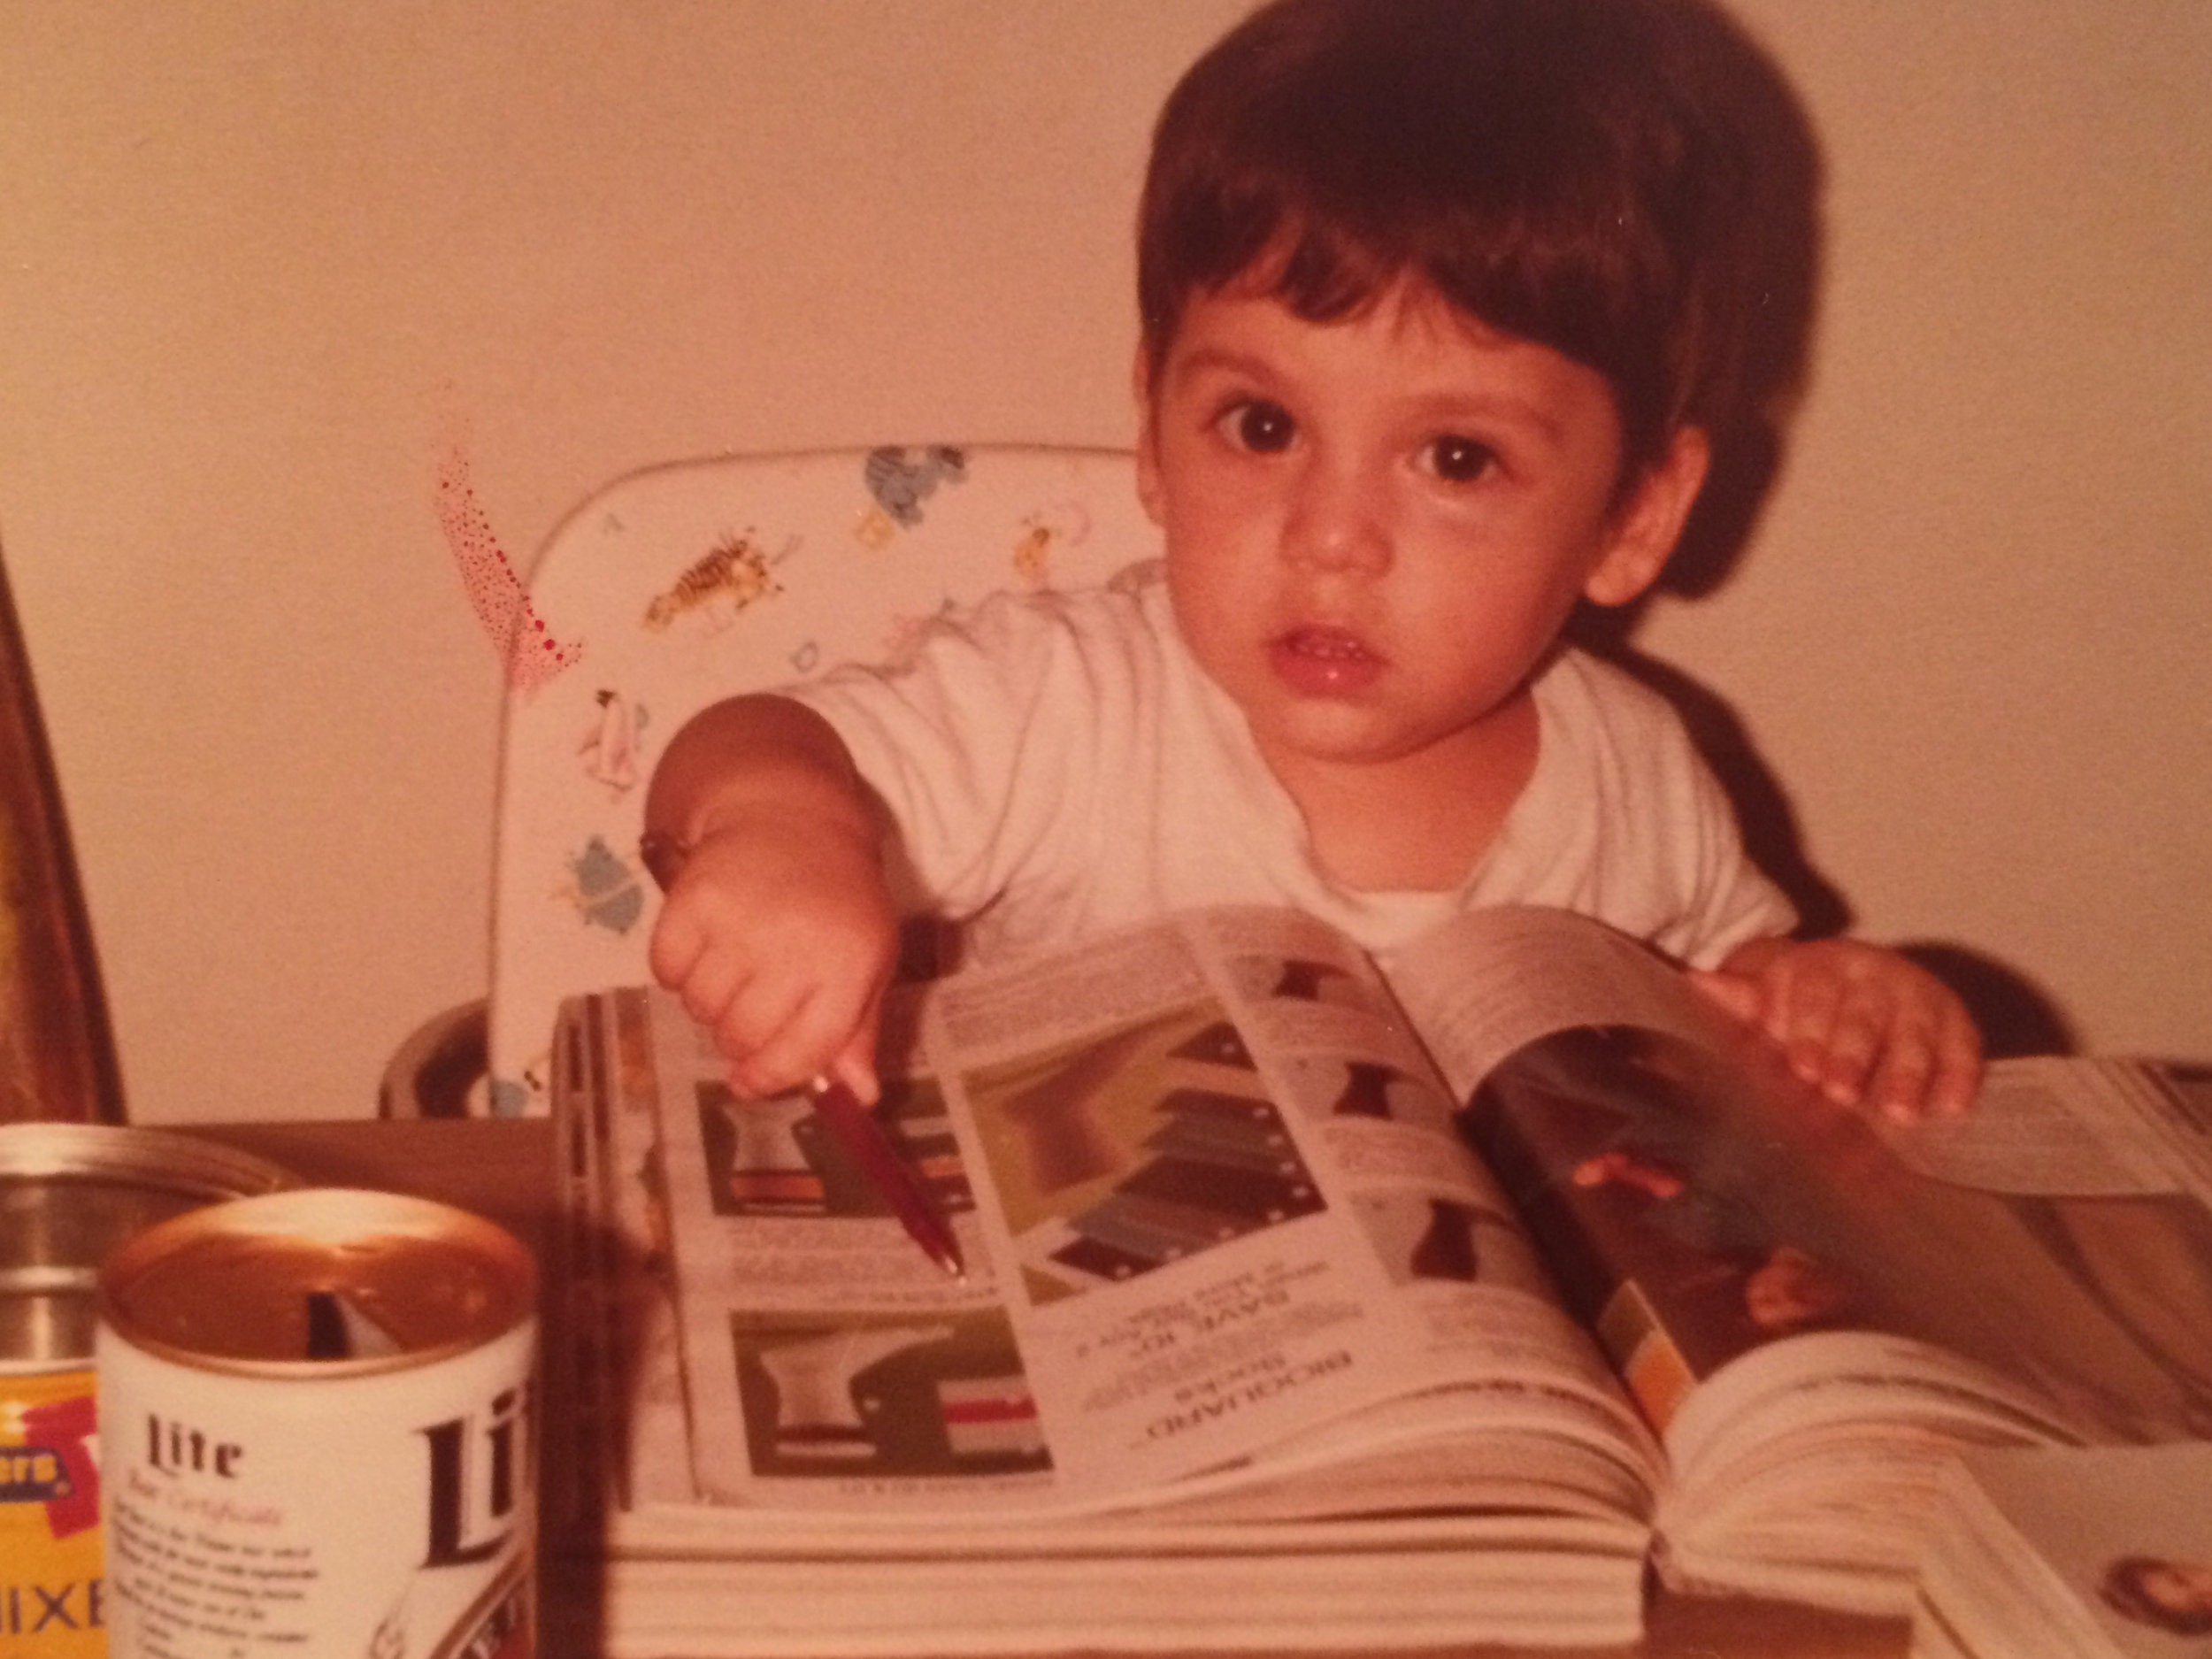 It all started at a very young age. (My passion for design, not Miller Lite.)